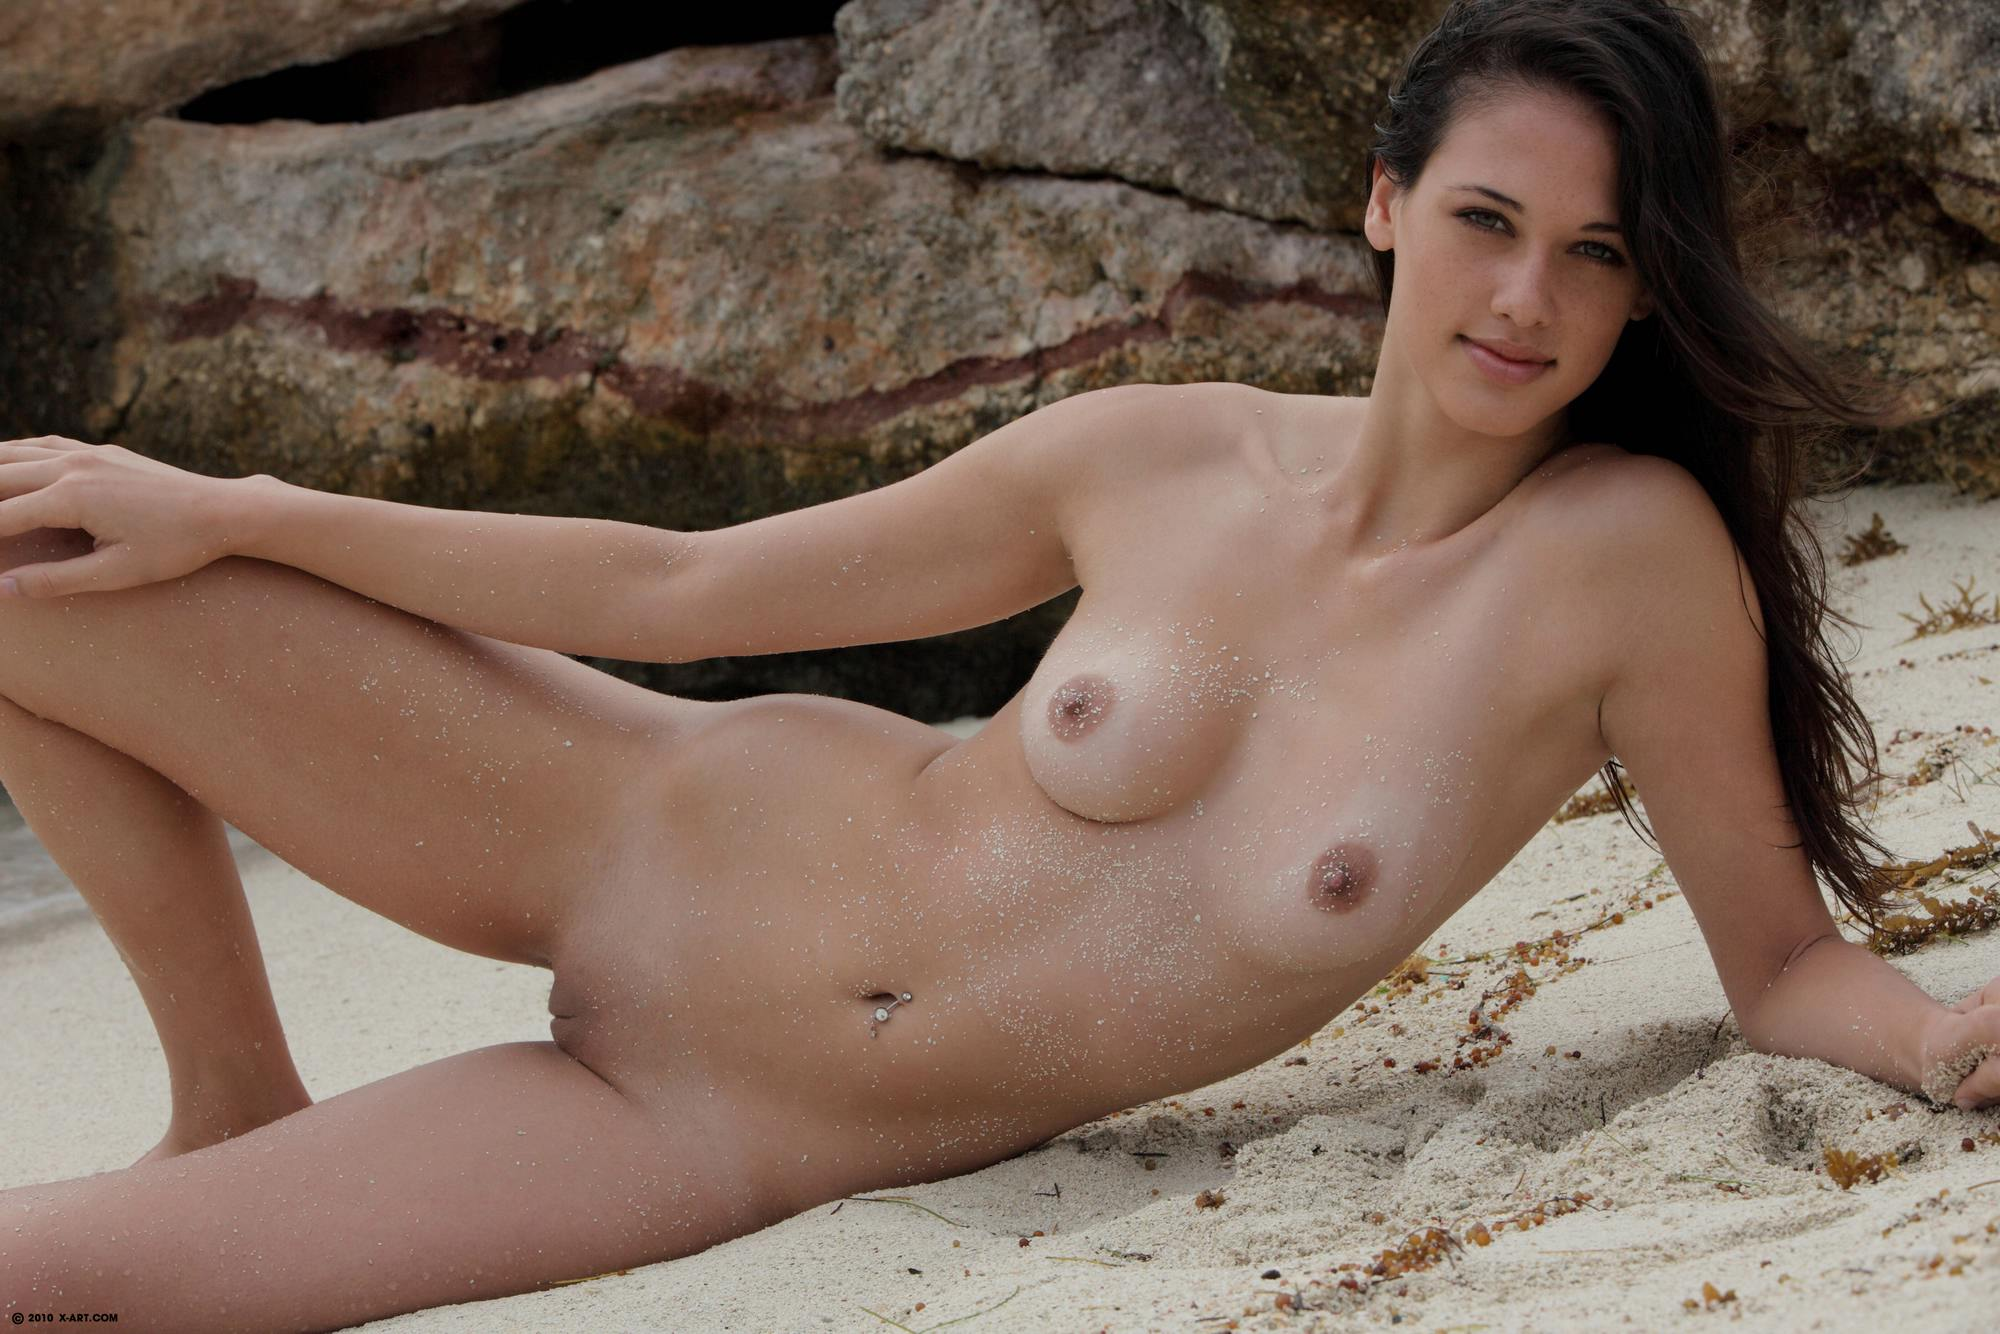 sexy women on nude beach free